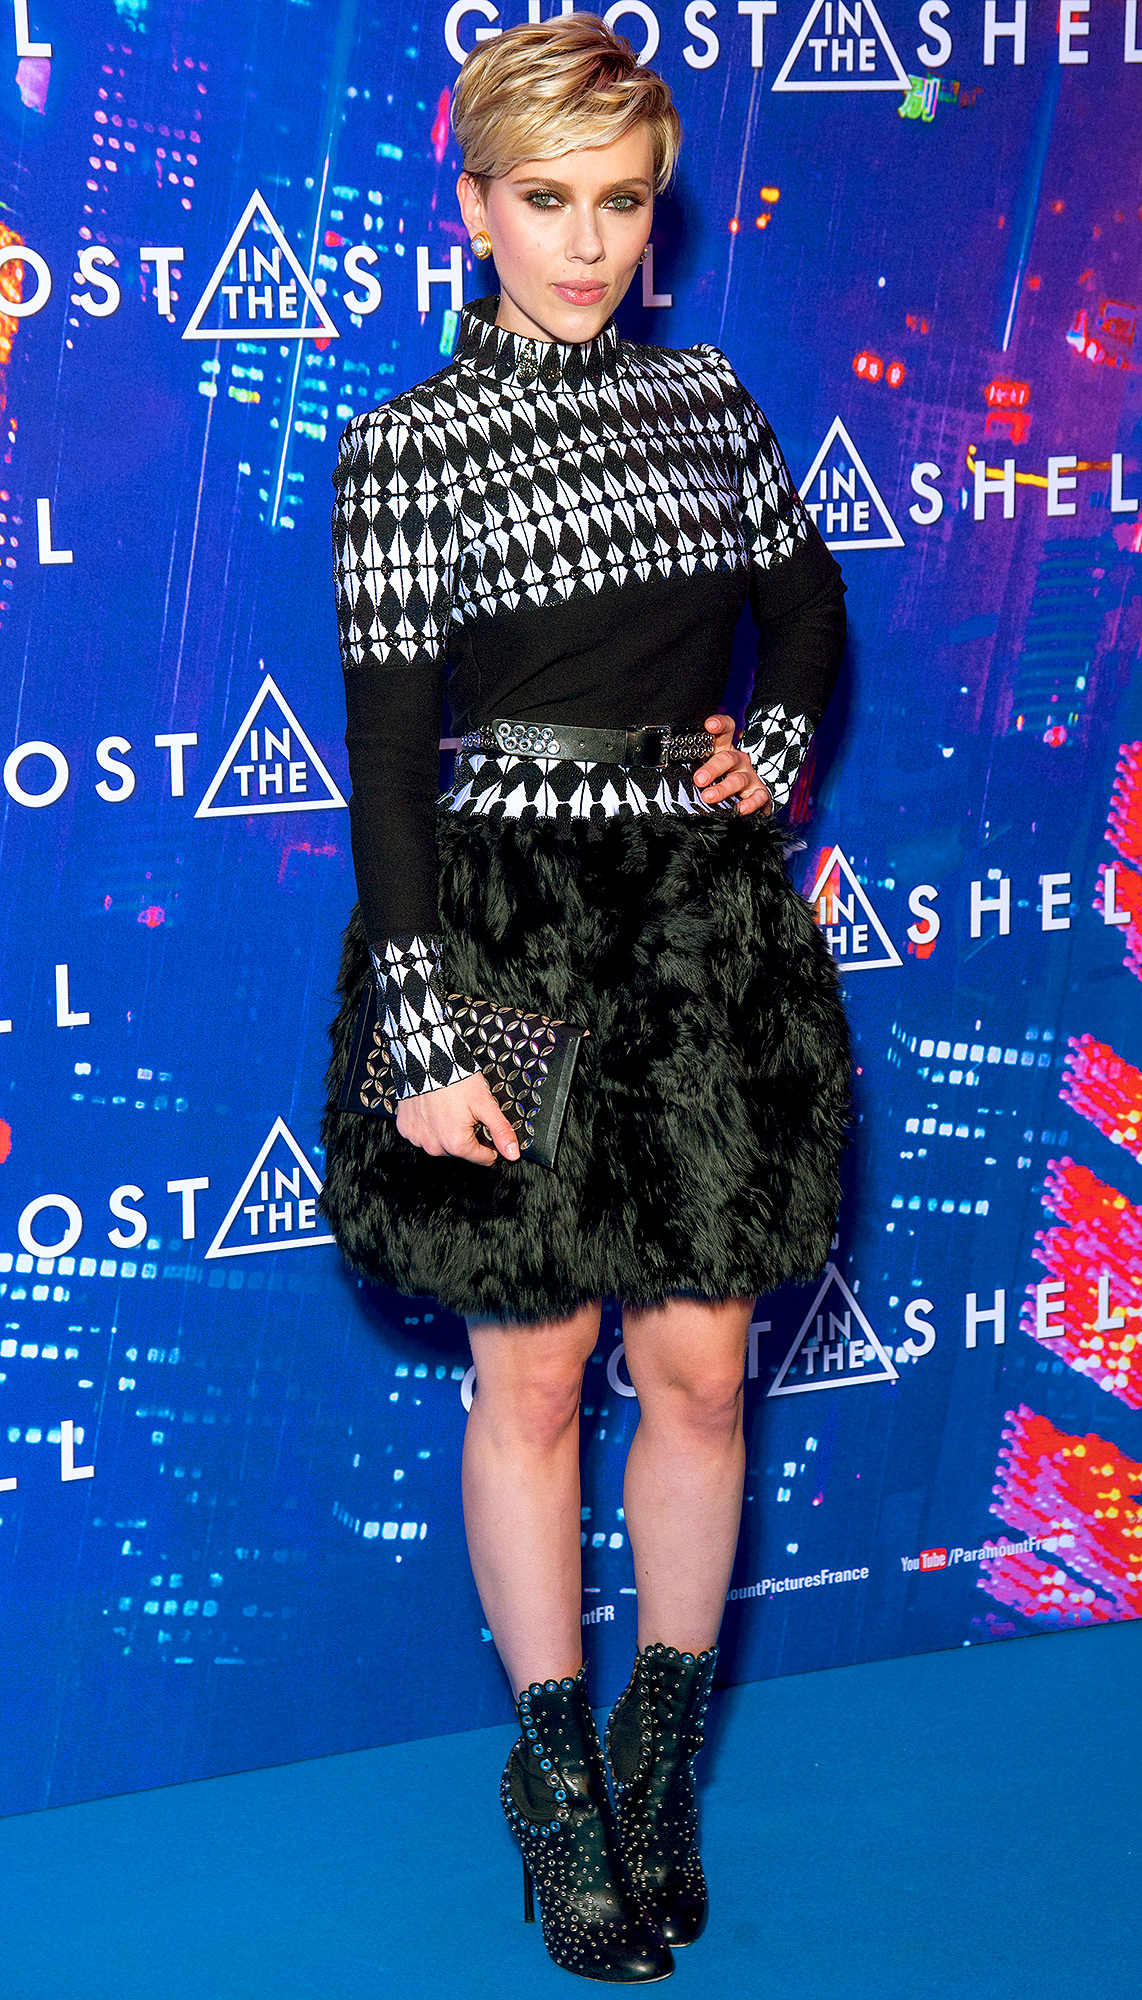 Celebrities attend 'Ghost in the shell' film premiere in Paris